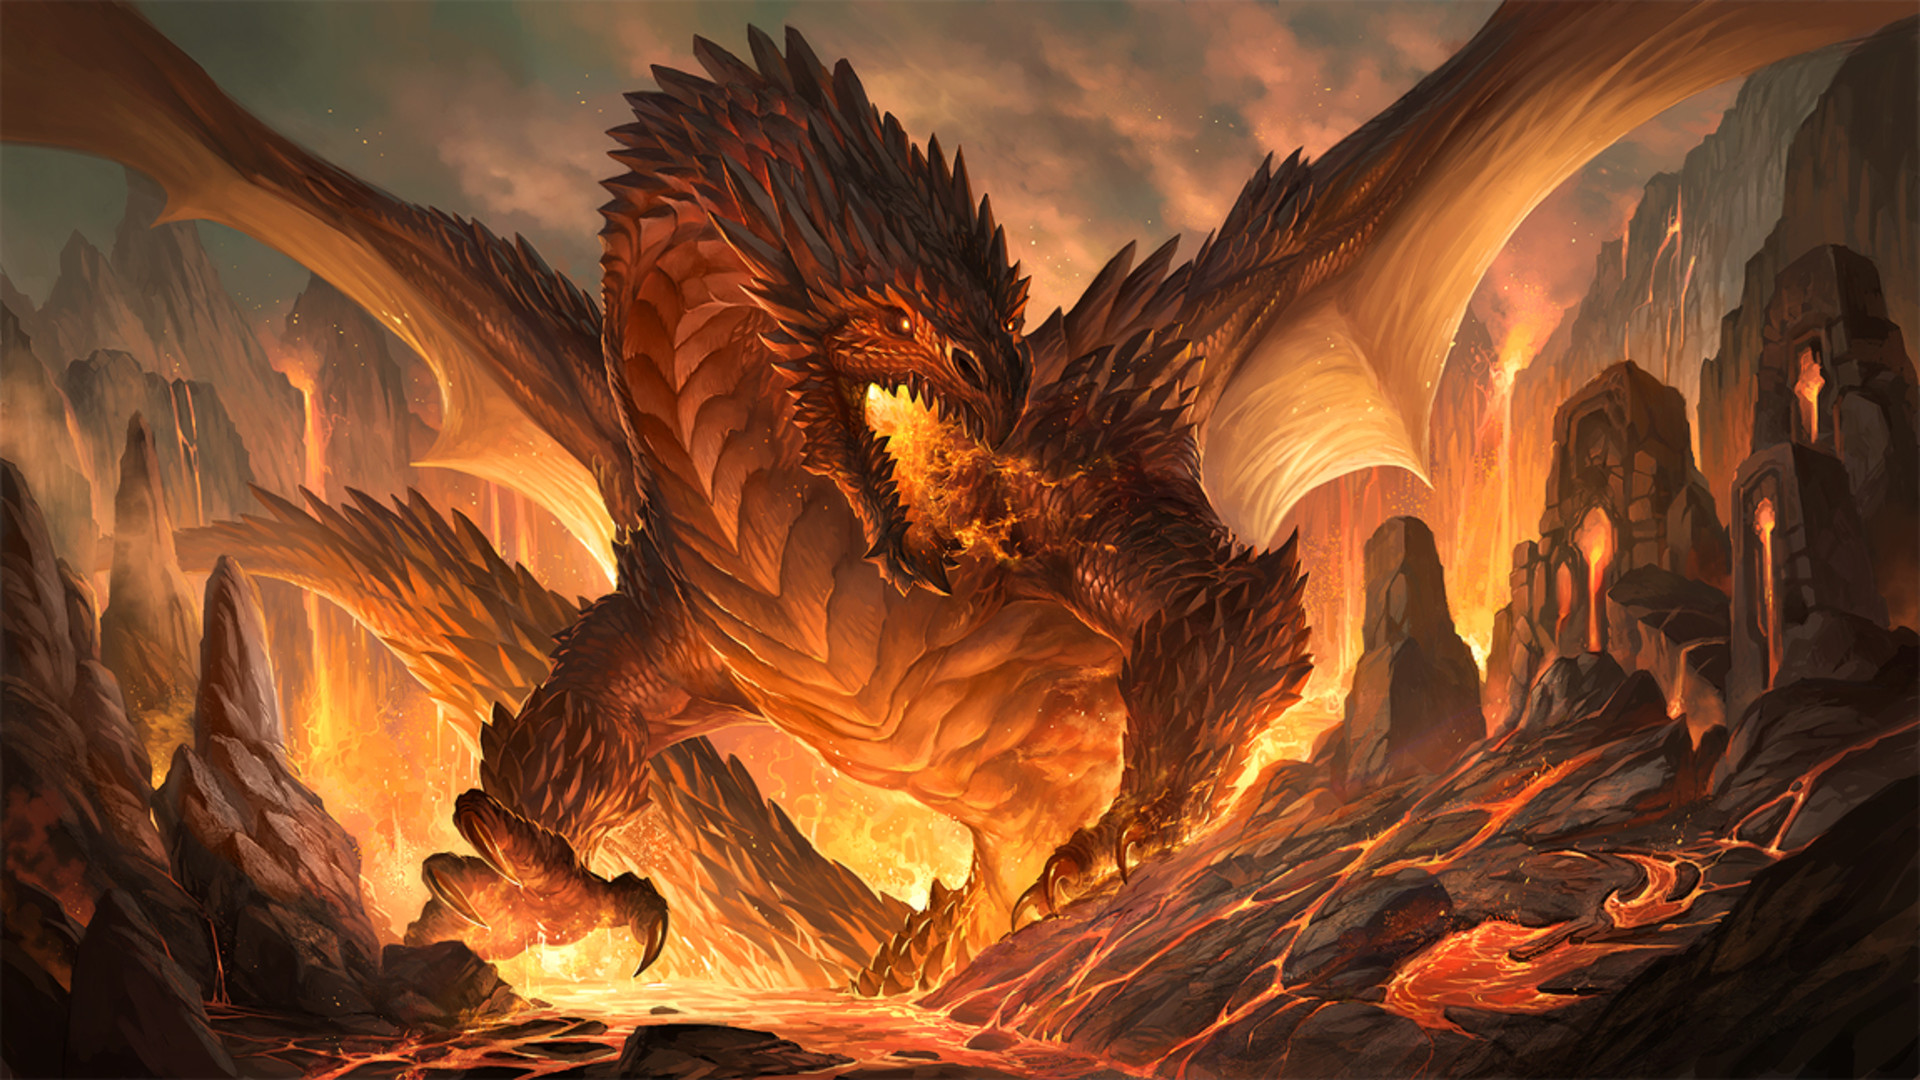 Dragon wallpaper hd 1080p 76 images - Dragon backgrounds 1920x1080 ...